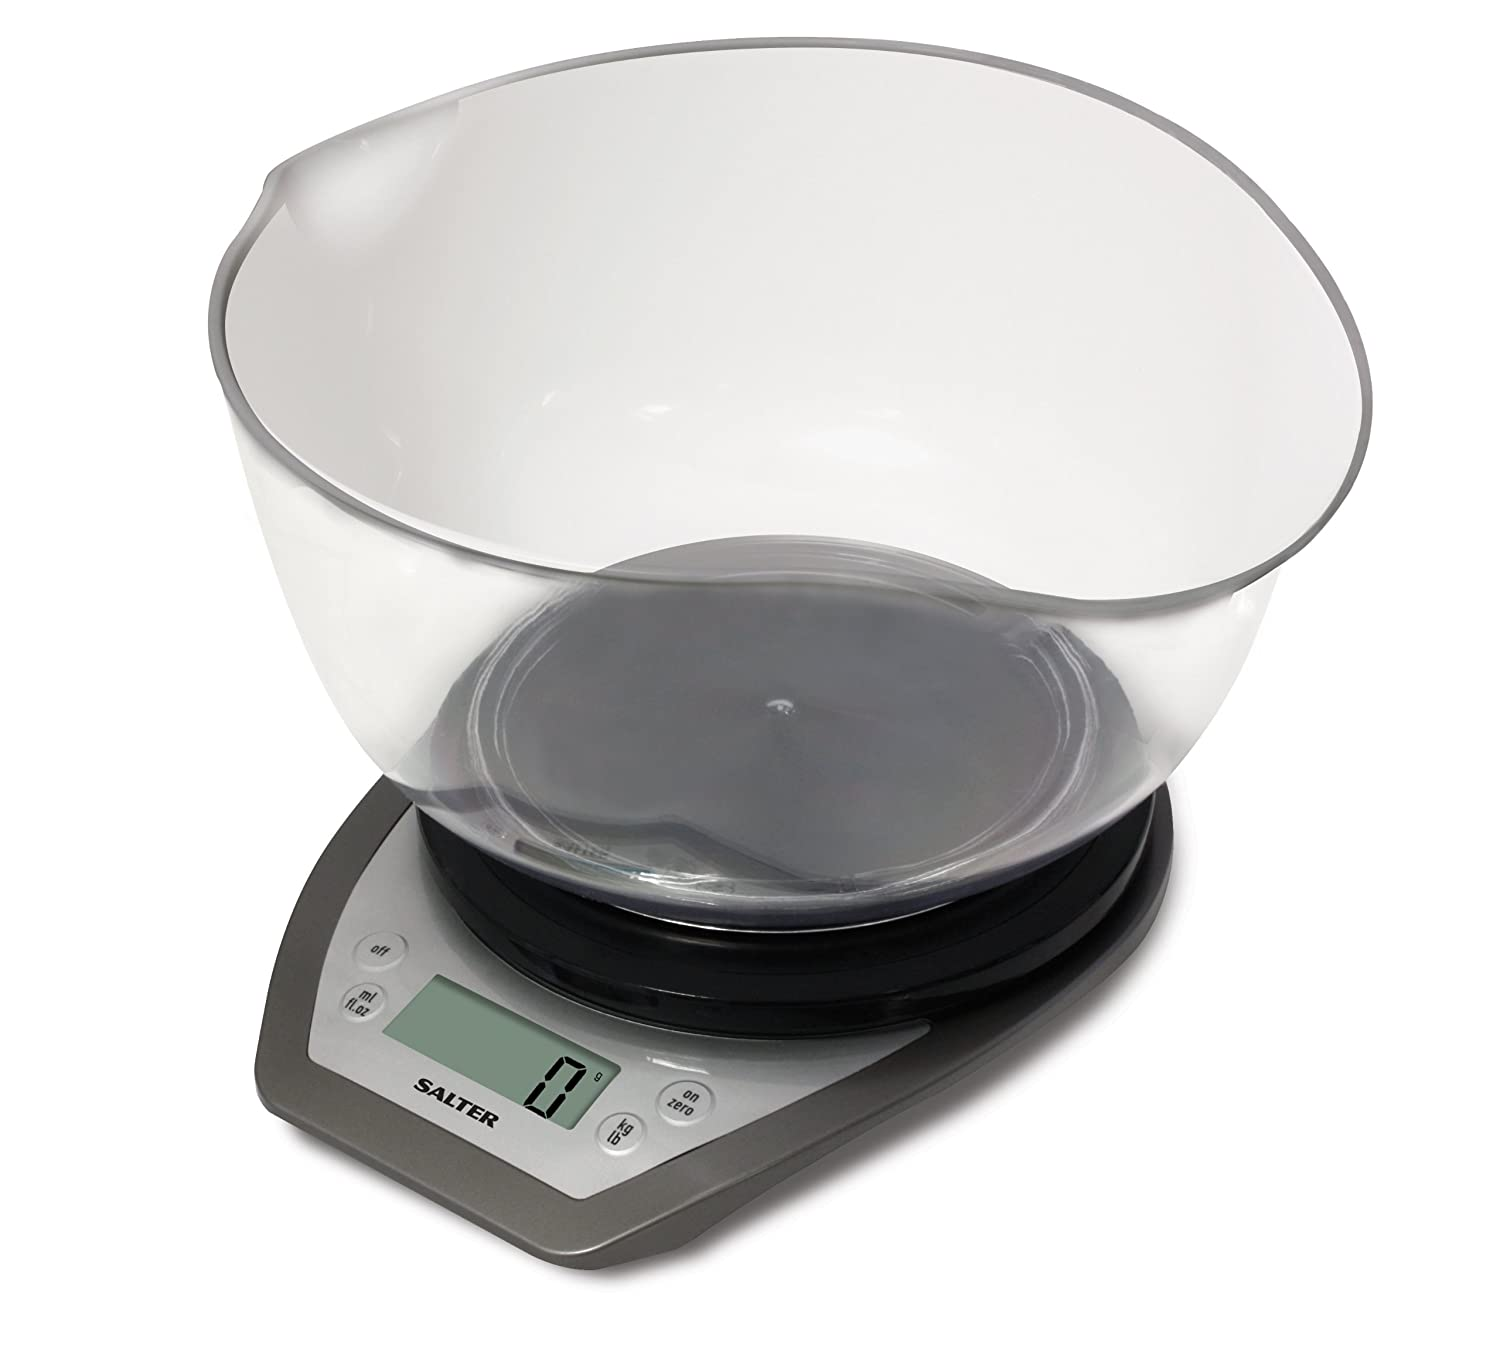 Superior Salter Digital Electronic Kitchen Scales   2 Litre Dual Pour Mixing Bowl,  Perfect For Cooking, Baking, Food / Liquid Weighing, Easy Read Display, ...